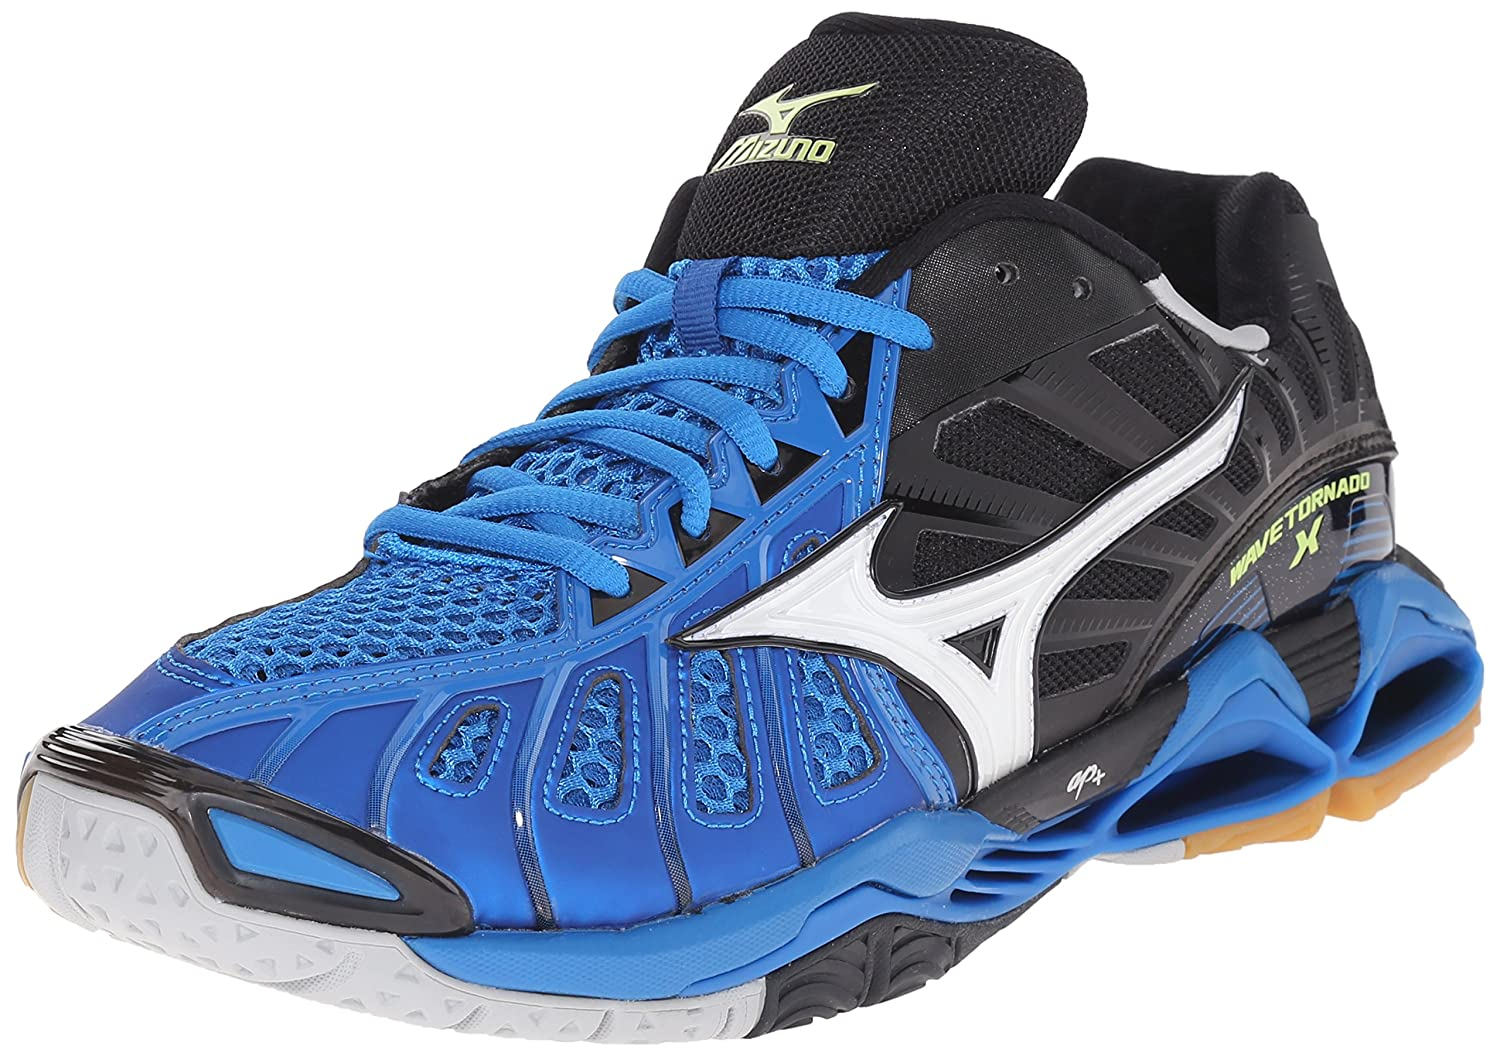 Mizuno Men's Wave Tornado X Volleyball Shoe Mizuno USA WAVE TORNADO X-M